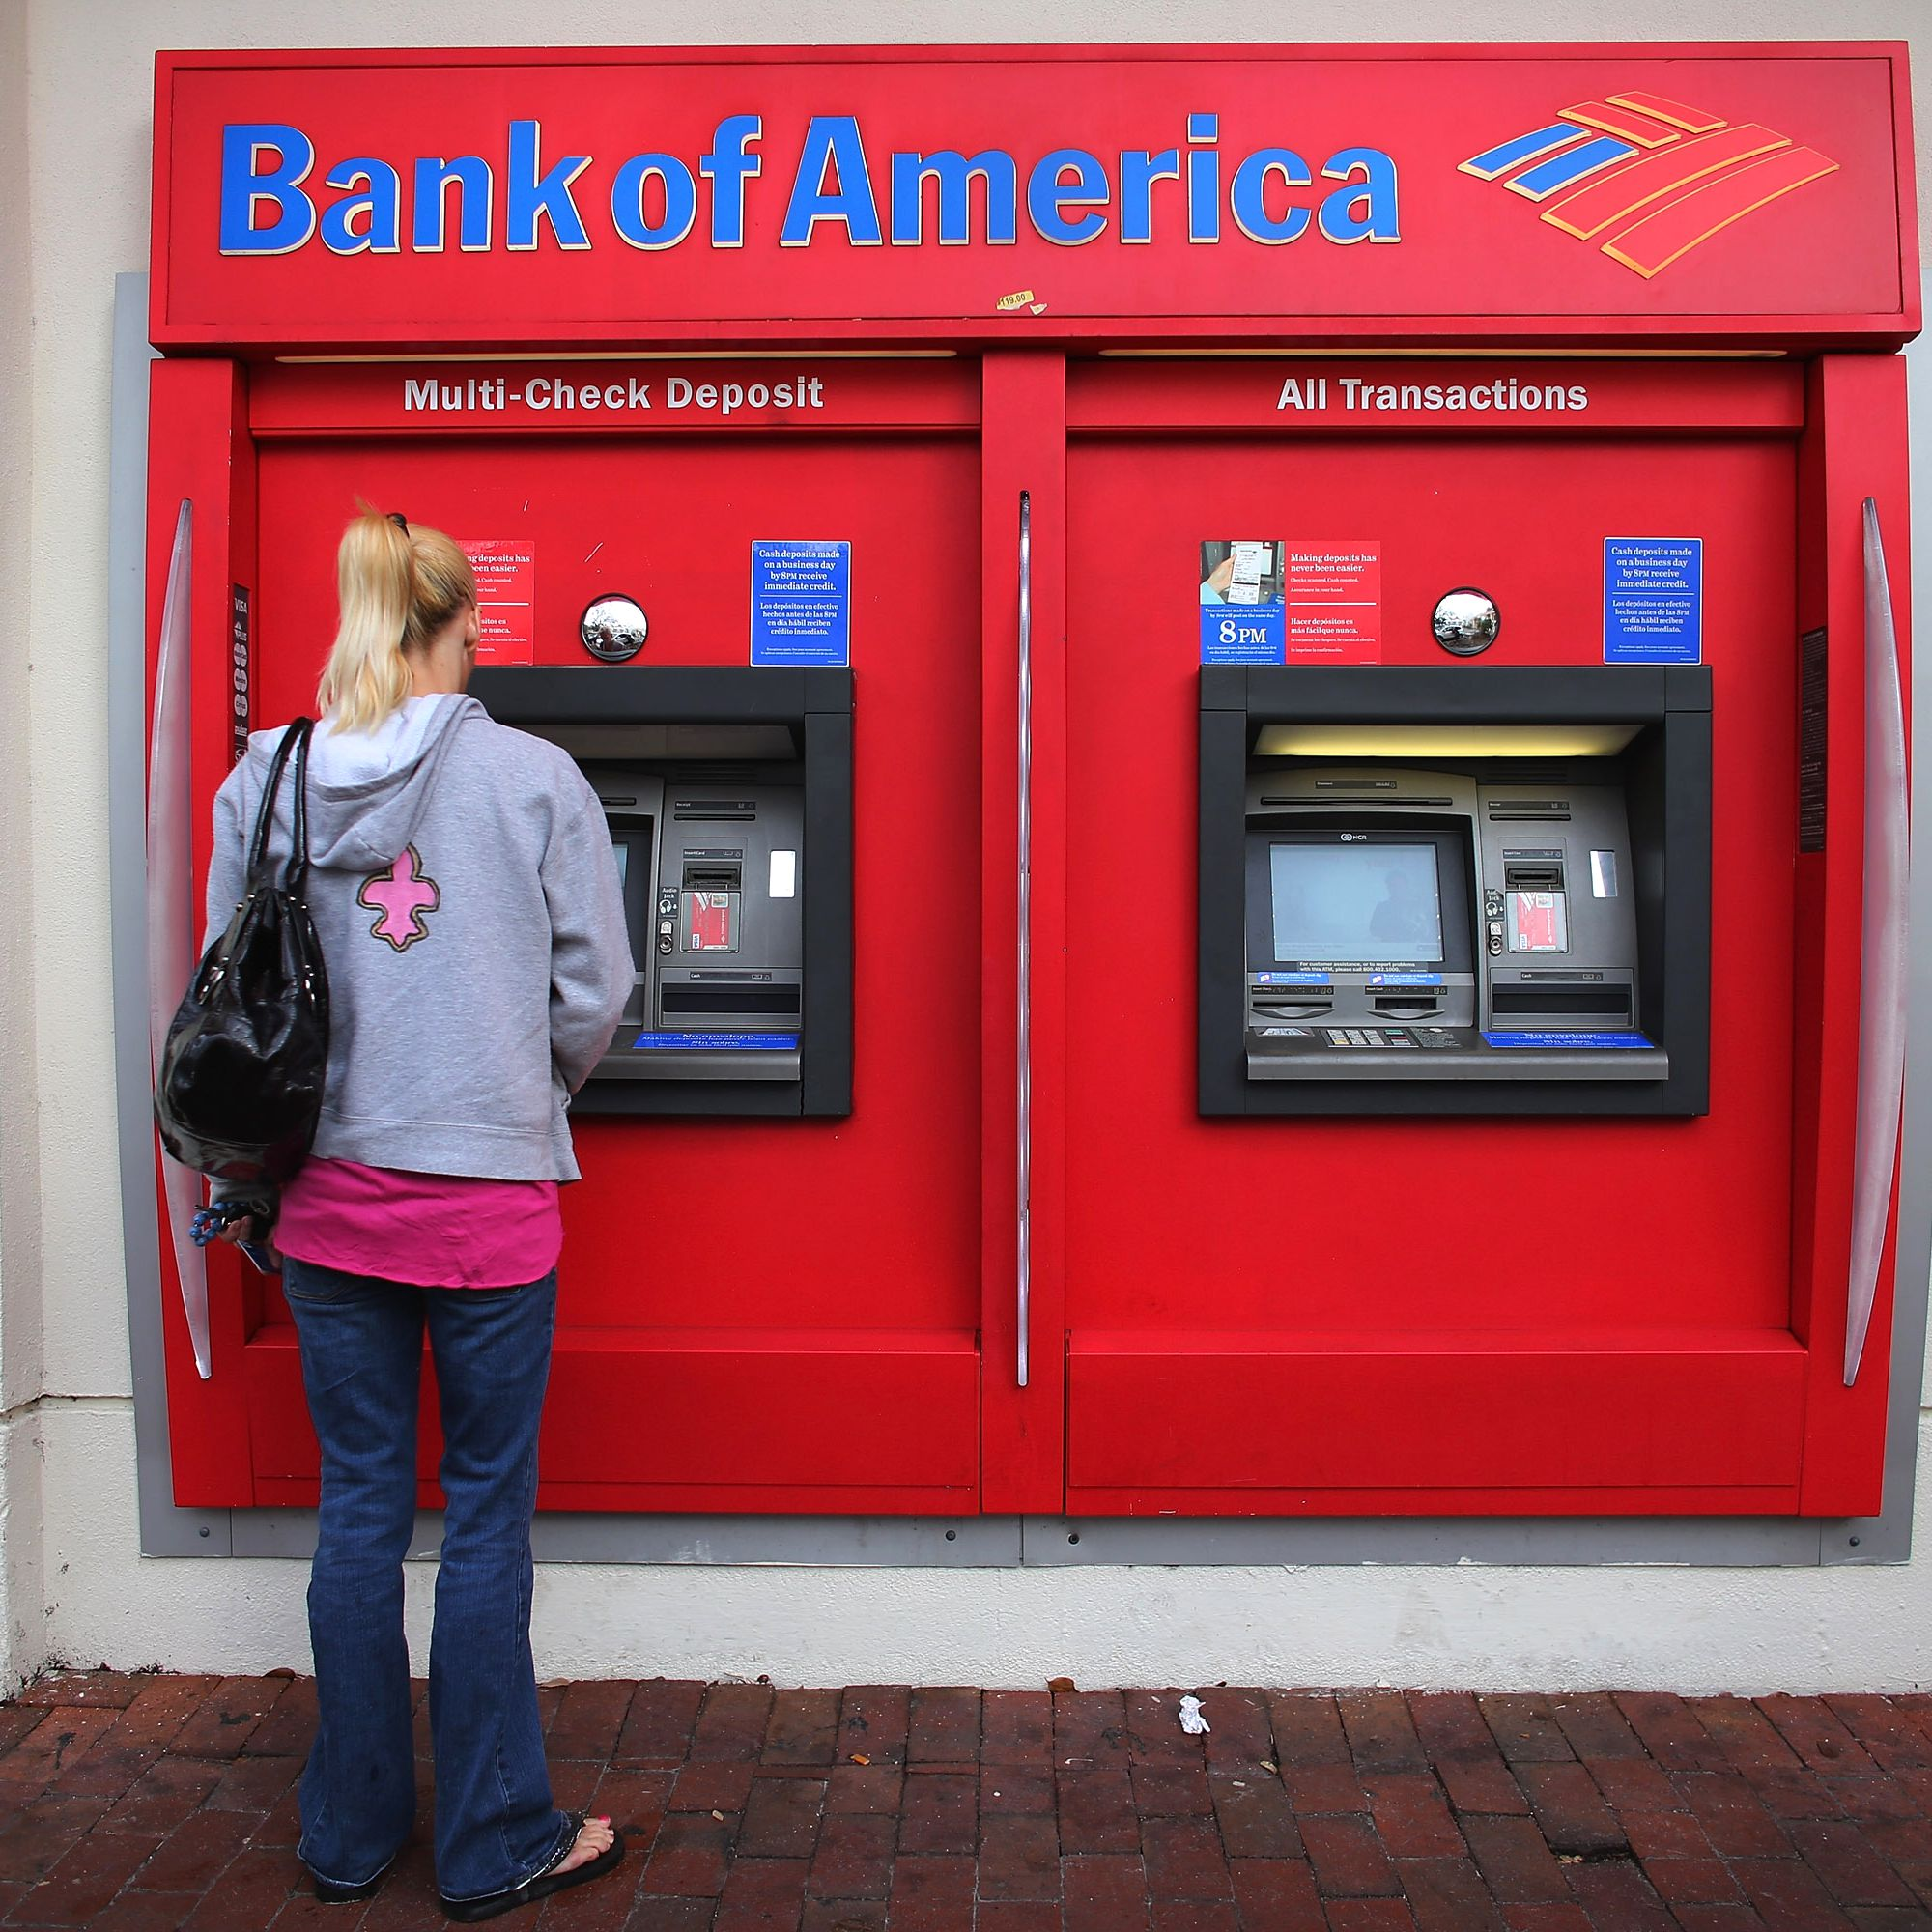 What to Do About ATM Withdrawal Limits